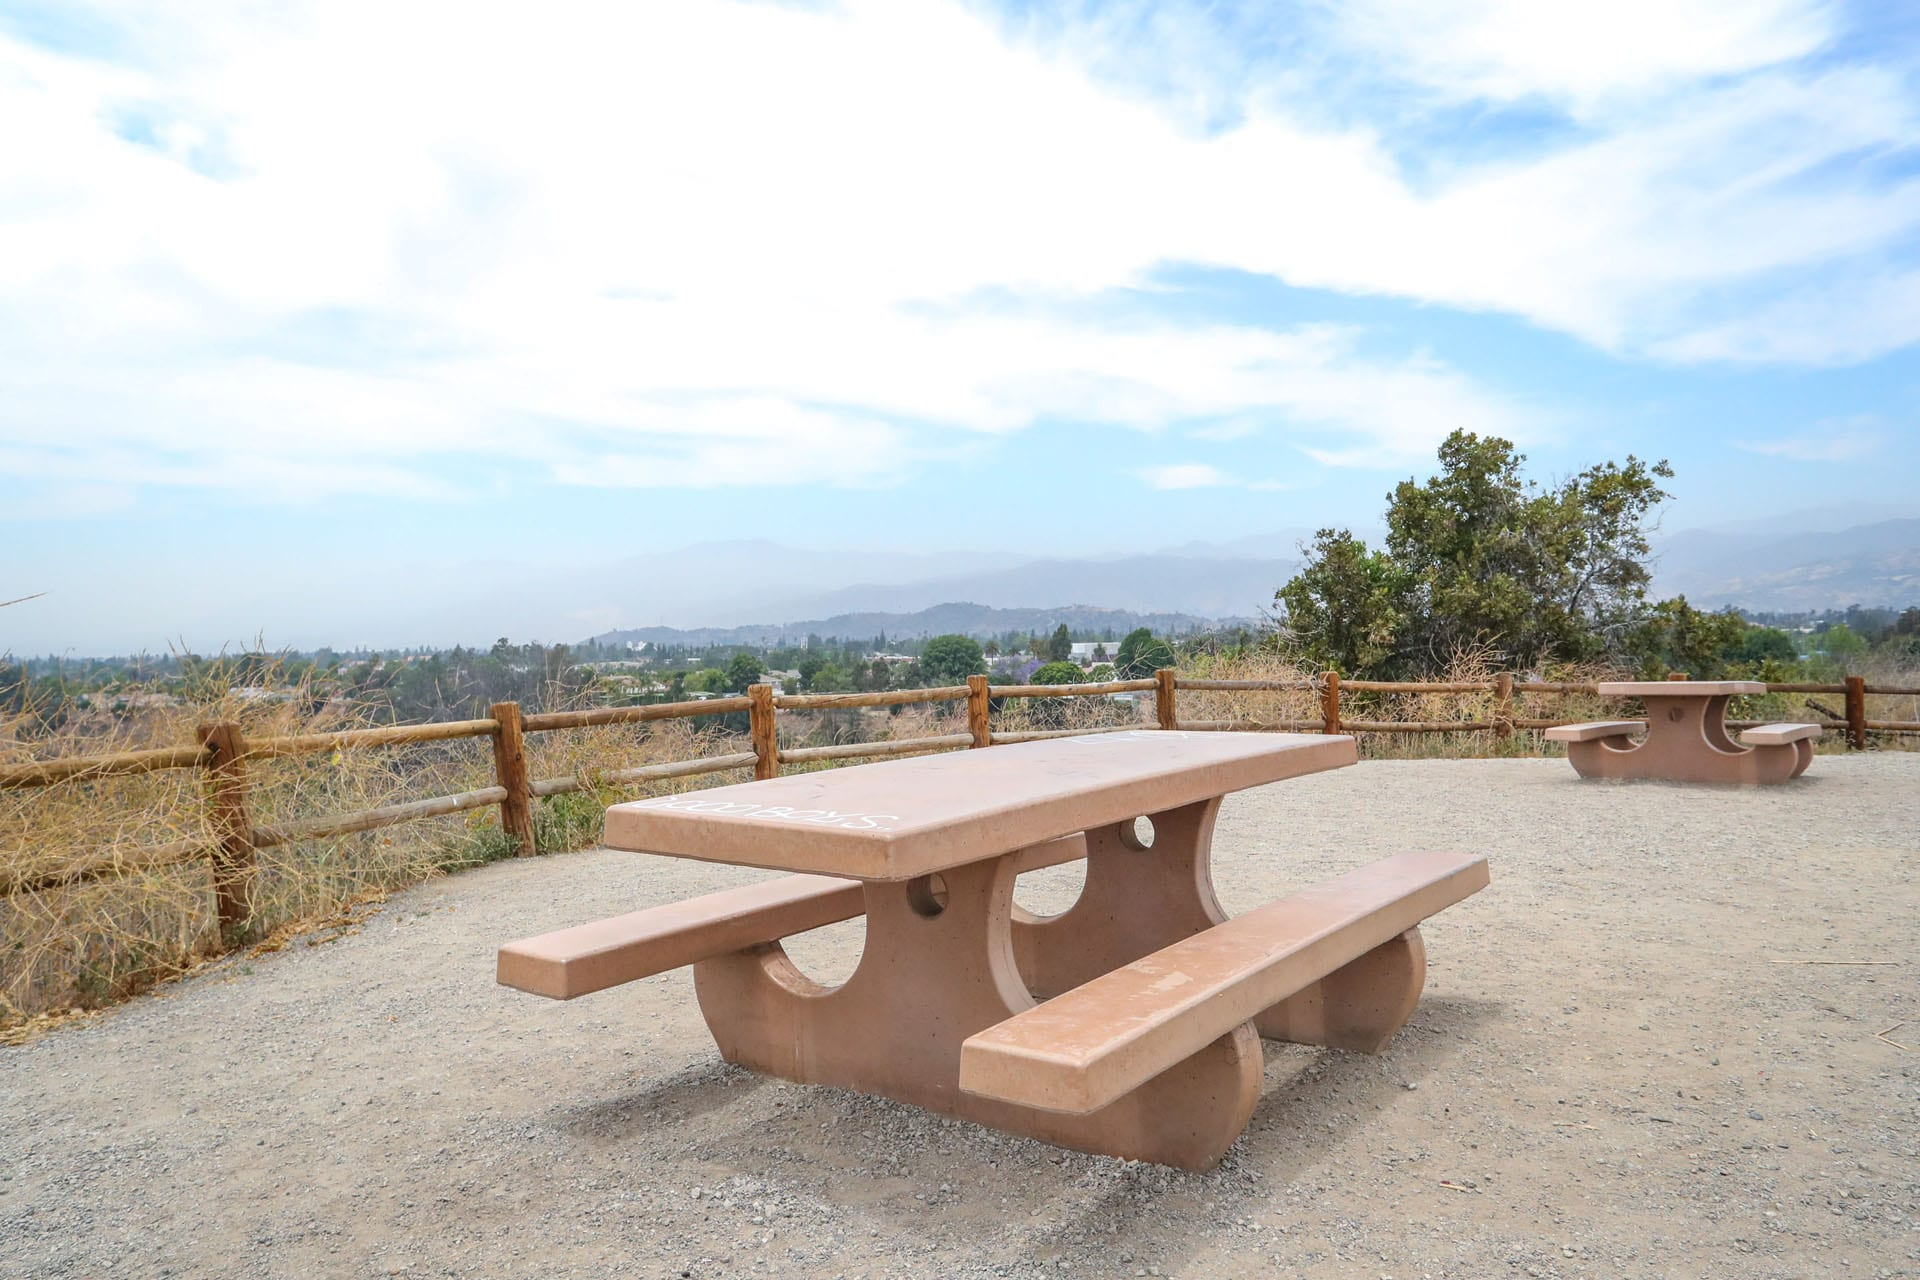 Adobe picnic tables